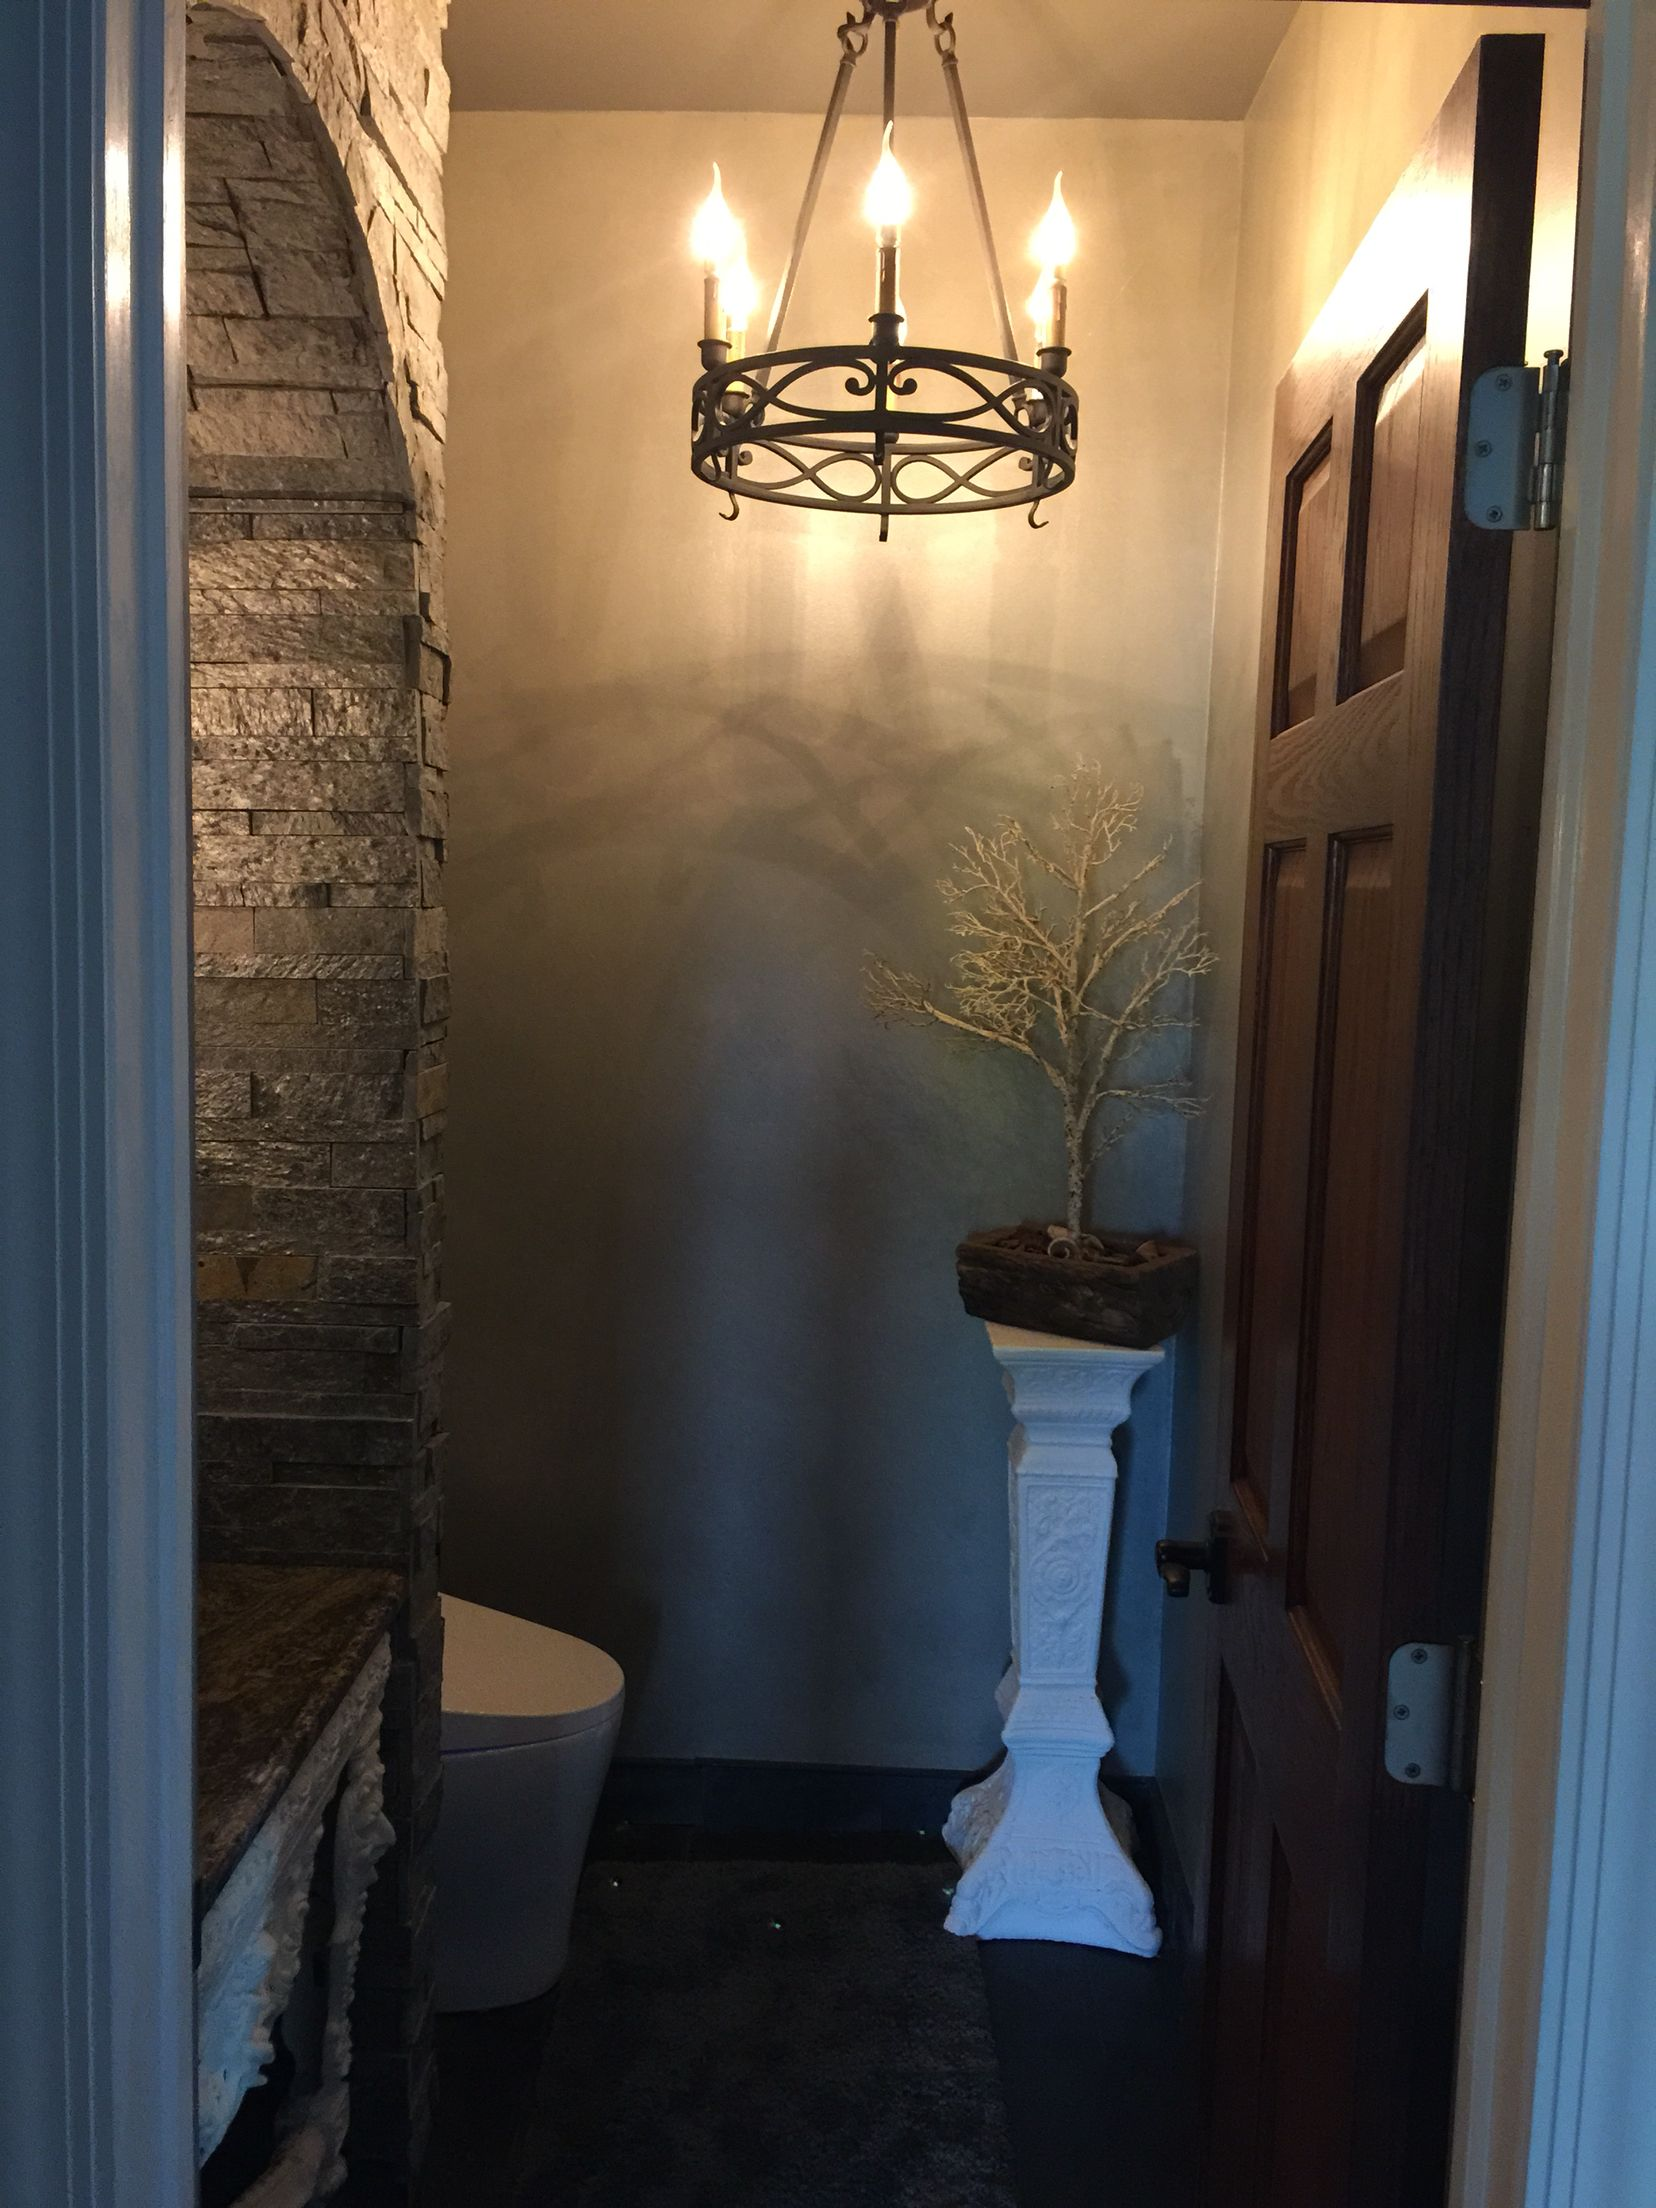 Bathroom Lights Rusting powder room - entrance to our old world castle bathroom with